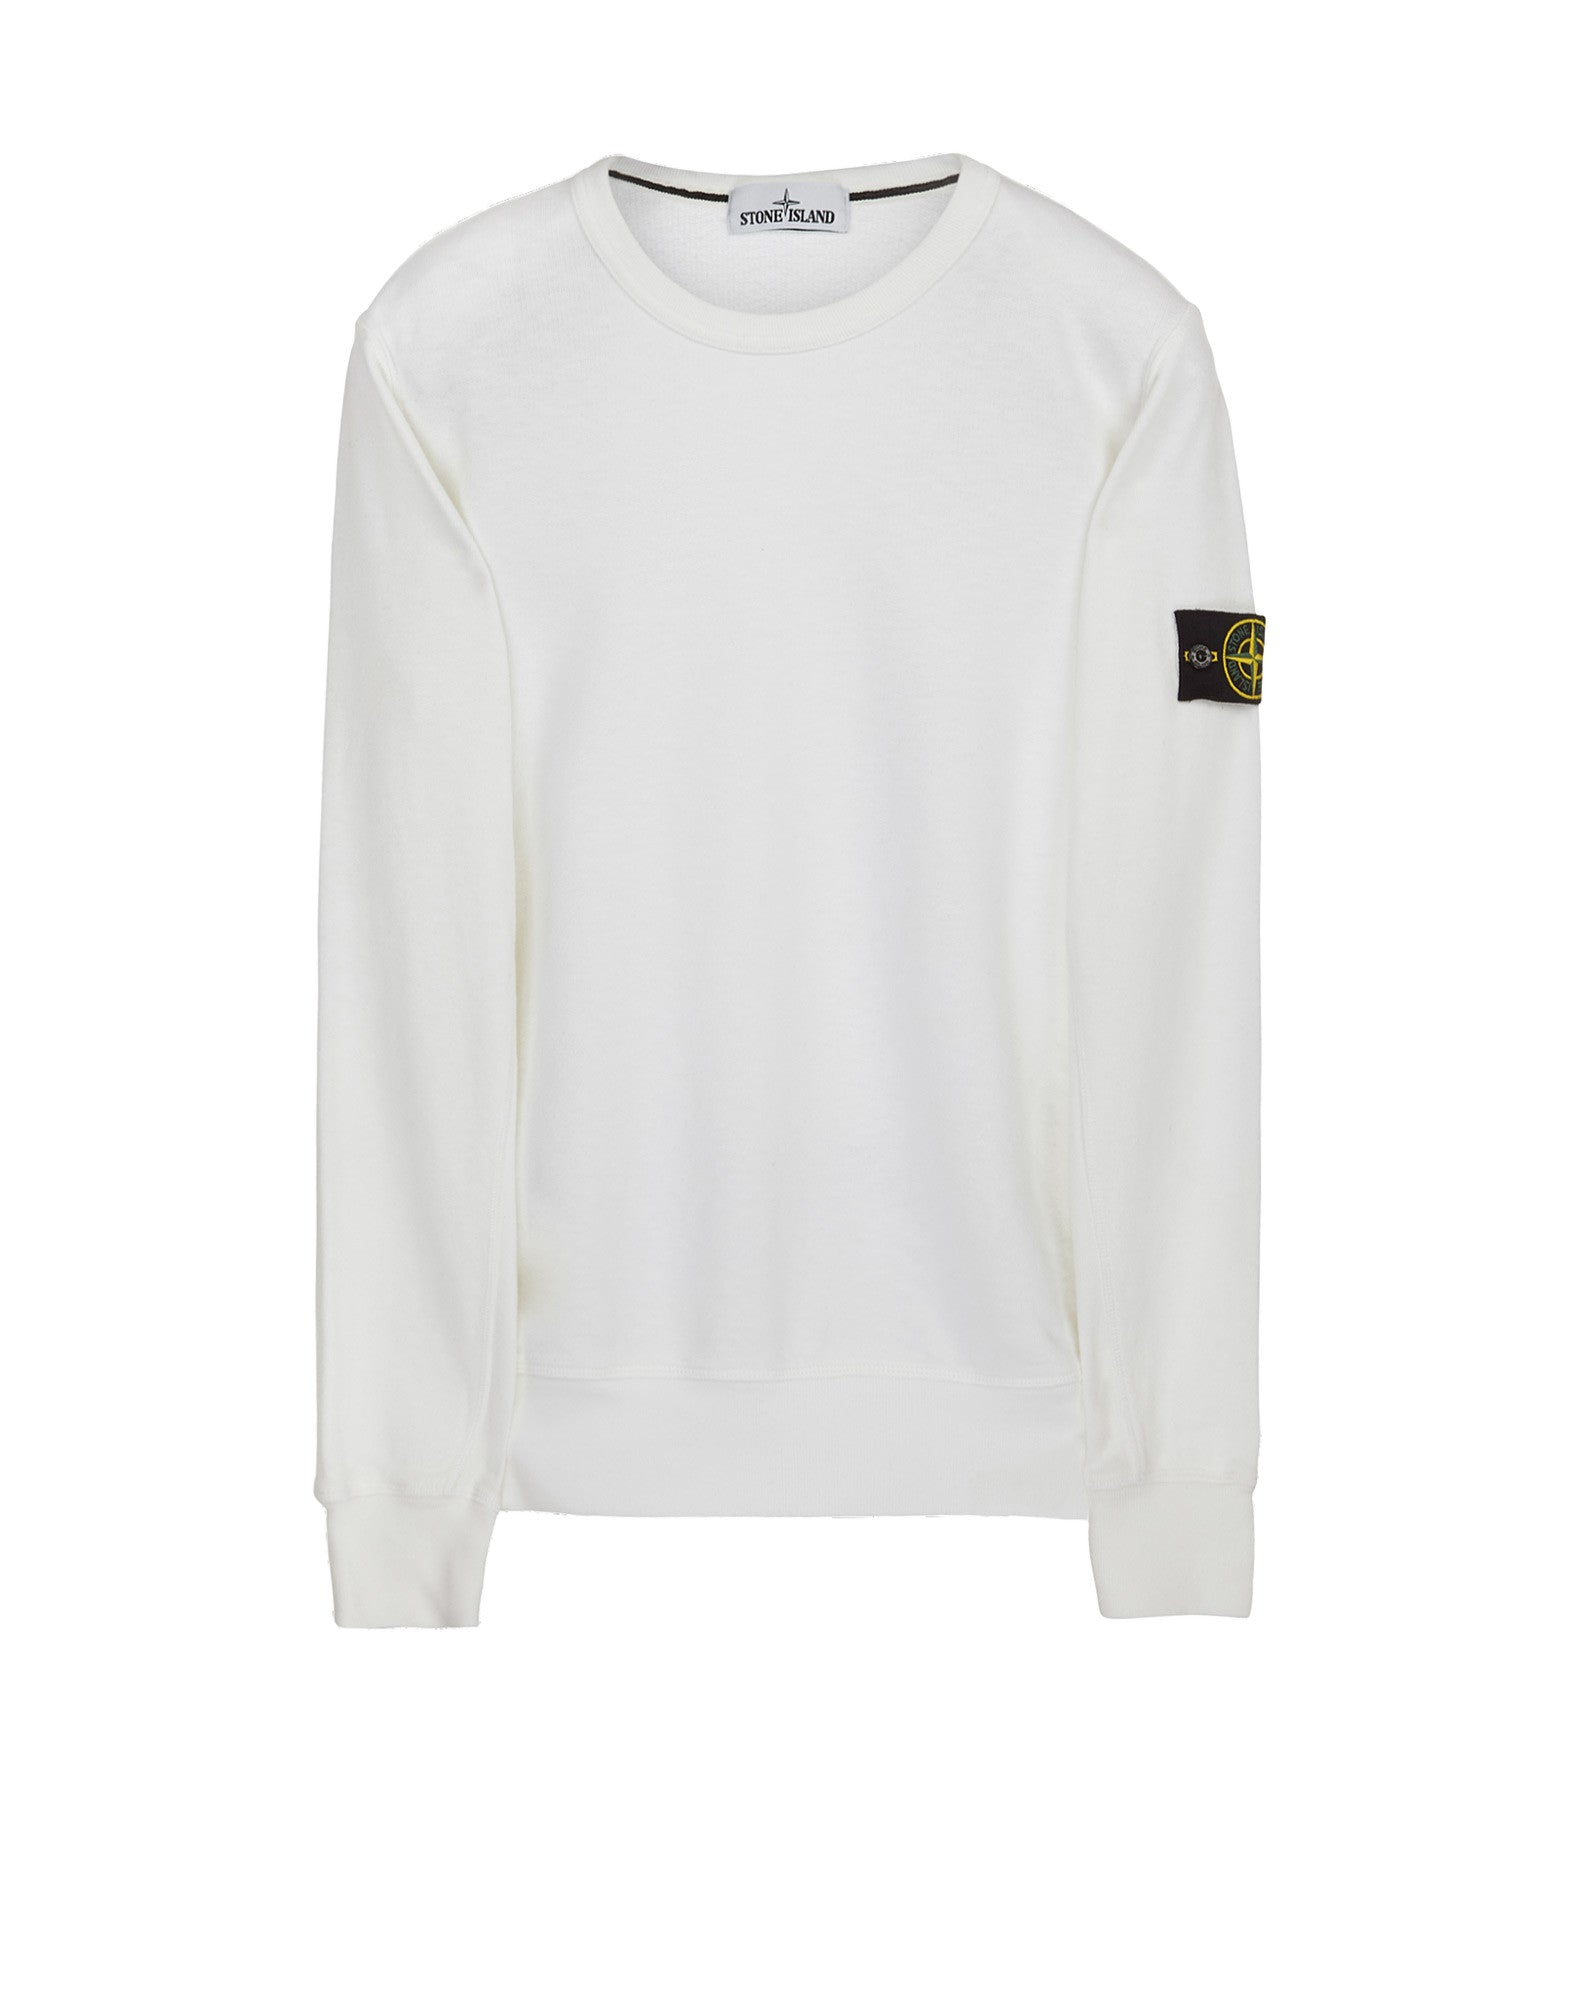 65360 Washed Crew Sweatshirt in White